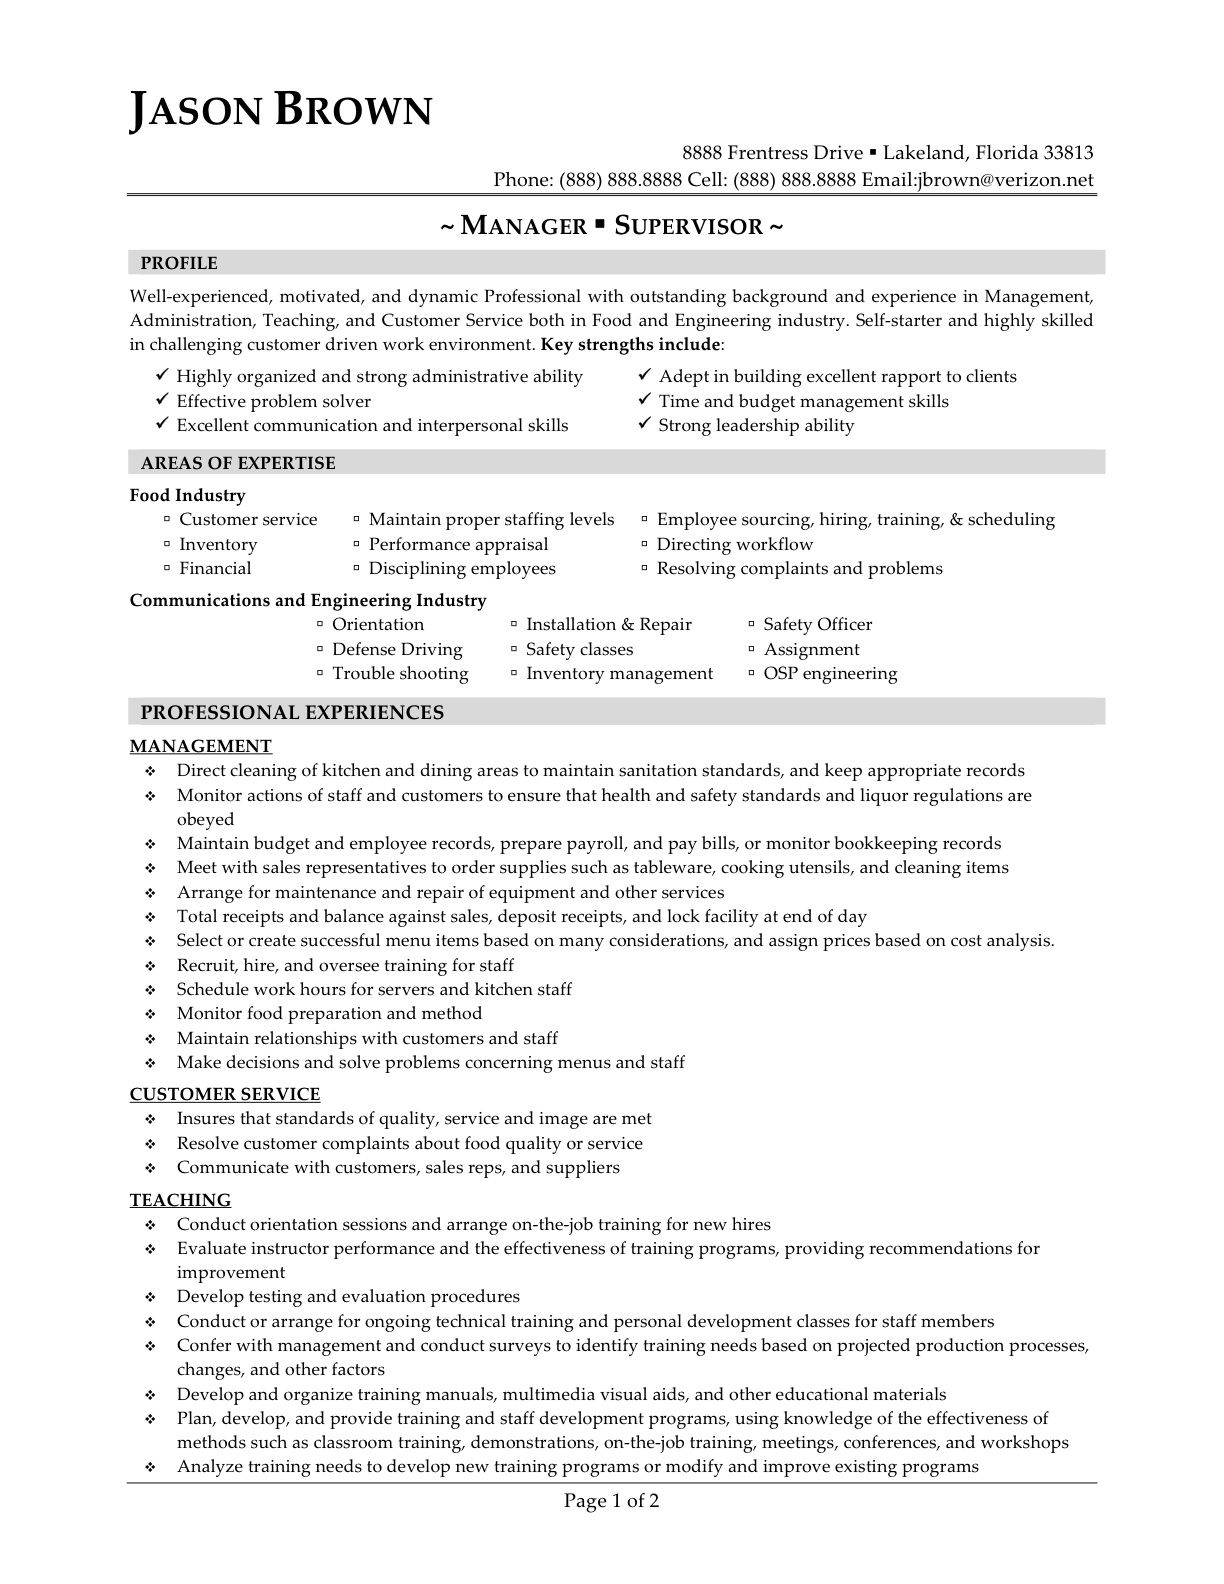 Supervisor Resume Sample Free Call Center Supervisor Resume Sample,  Customer Service Supervisor Resume Sample,  Resume For Supervisor